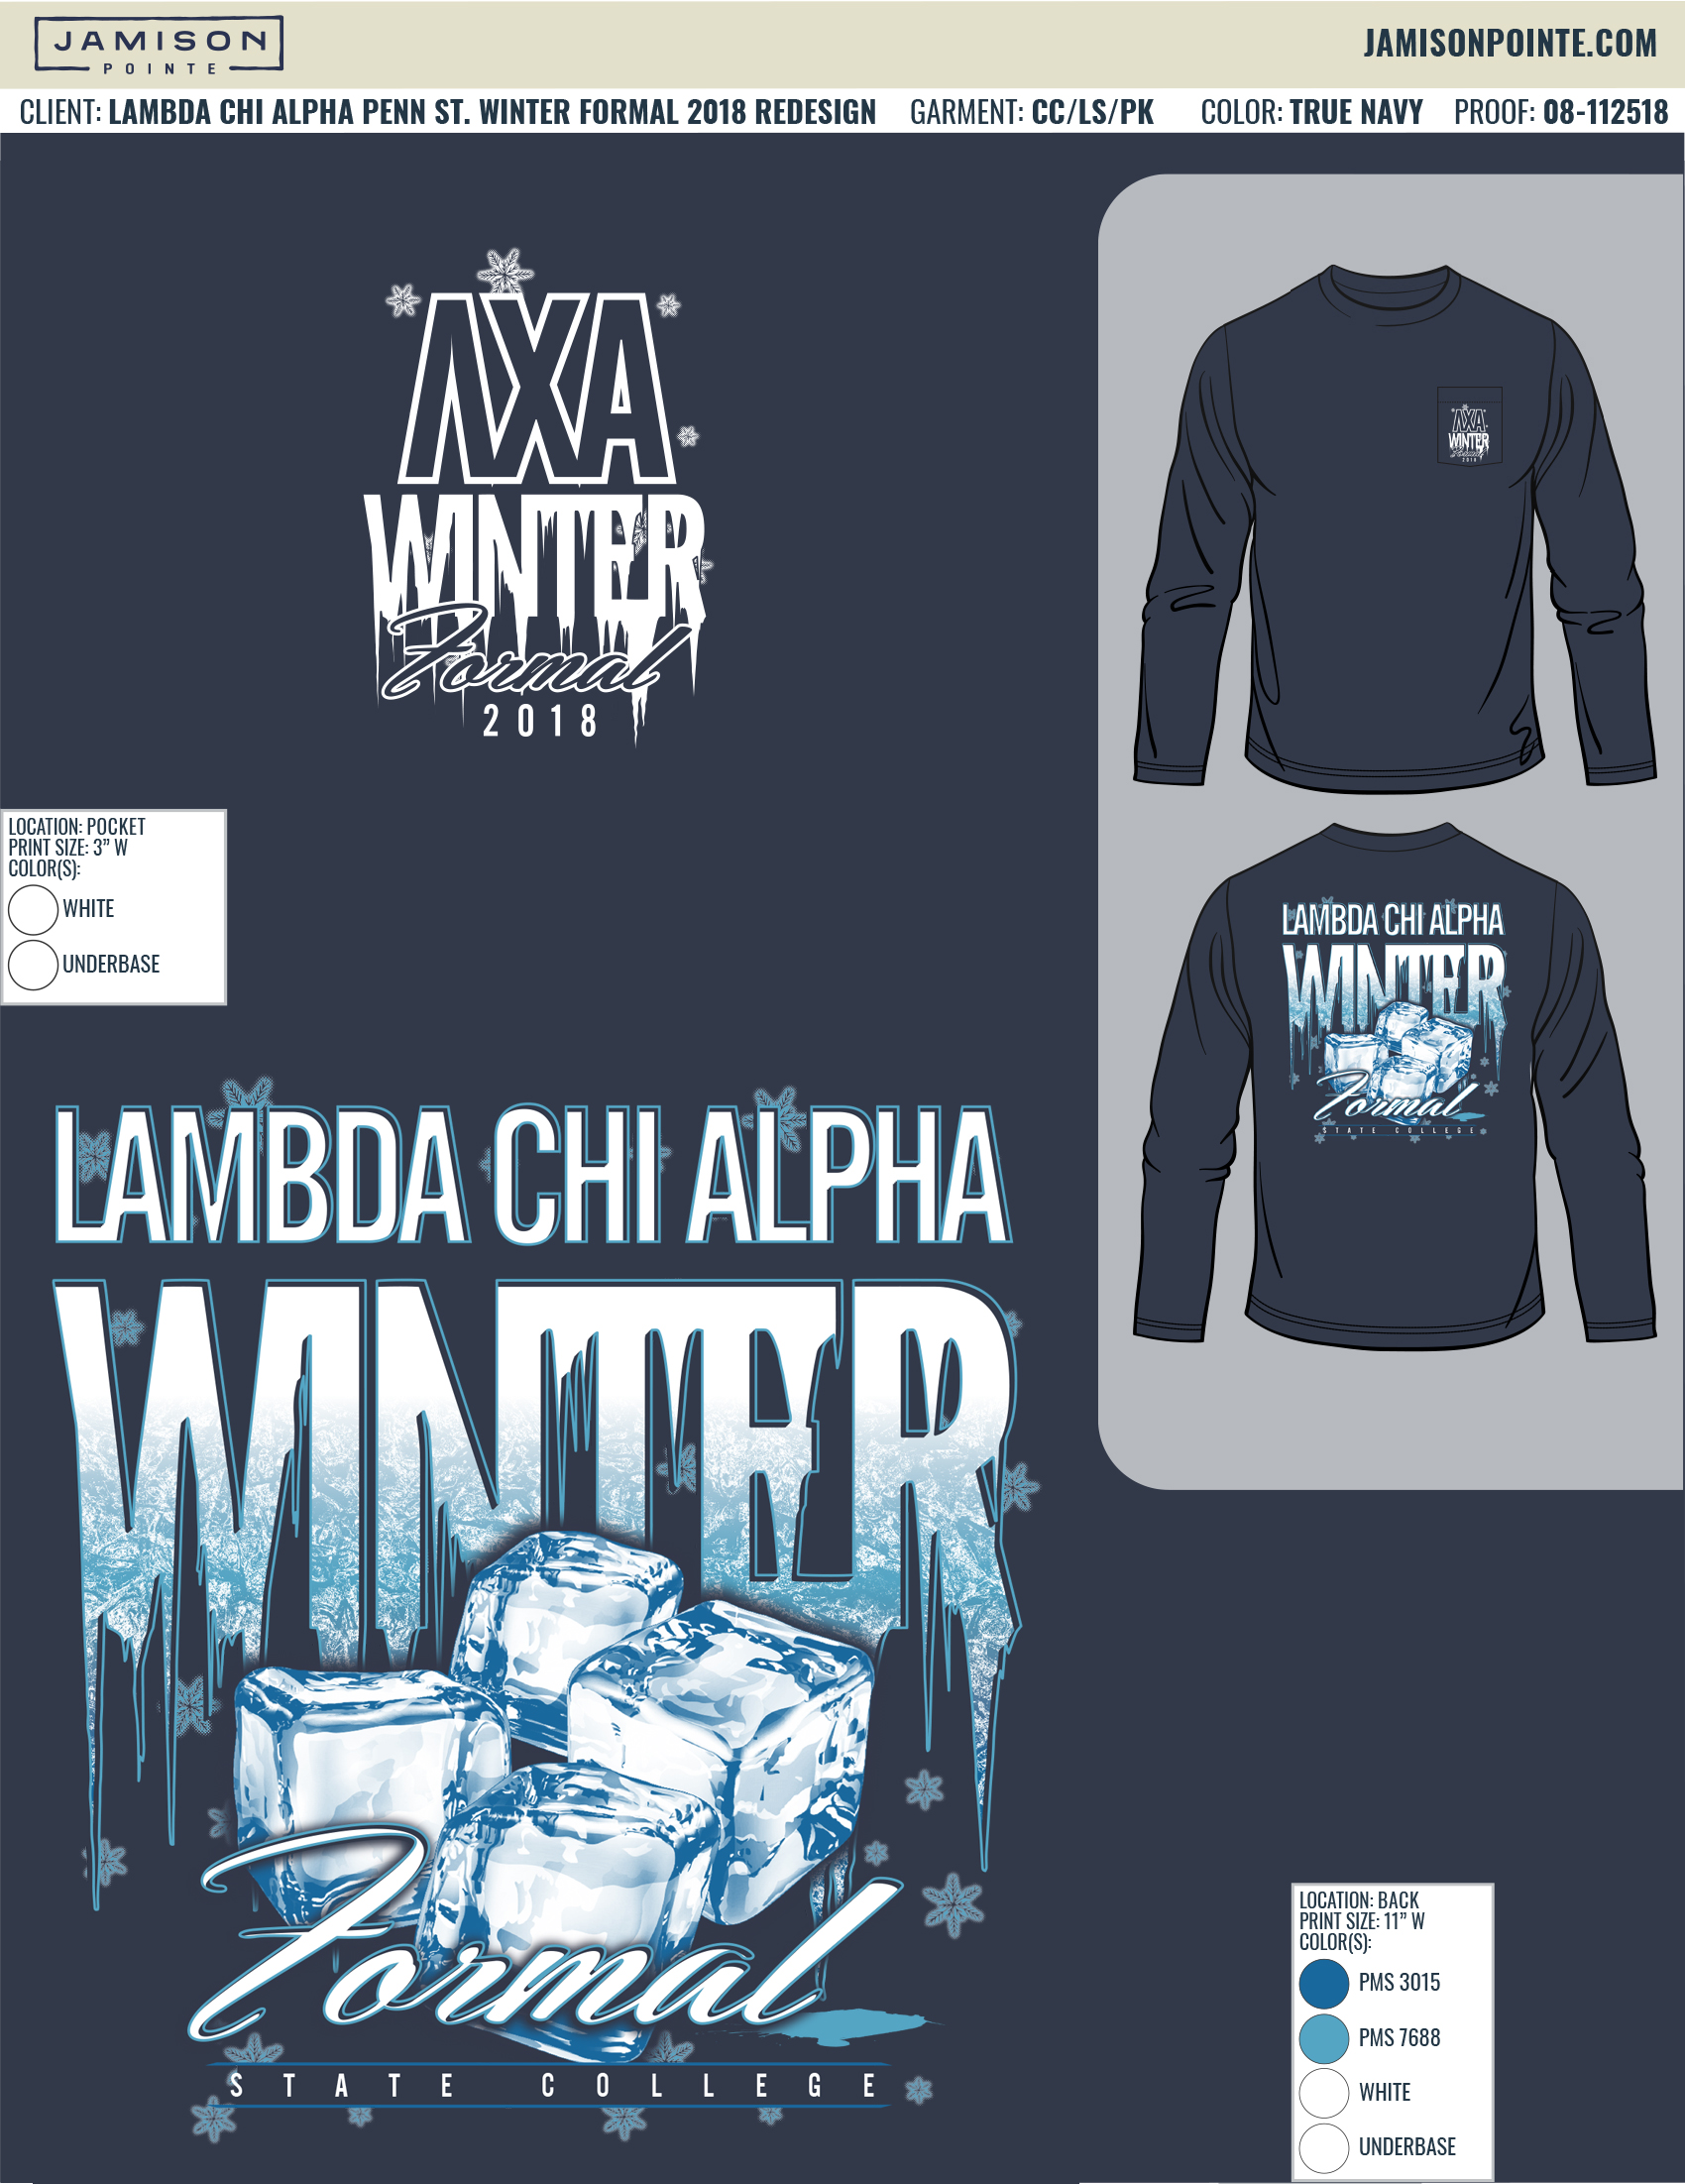 08-112518 Lambda Chi Alpha Penn State Winter Formal 2018 Redesign.jpg